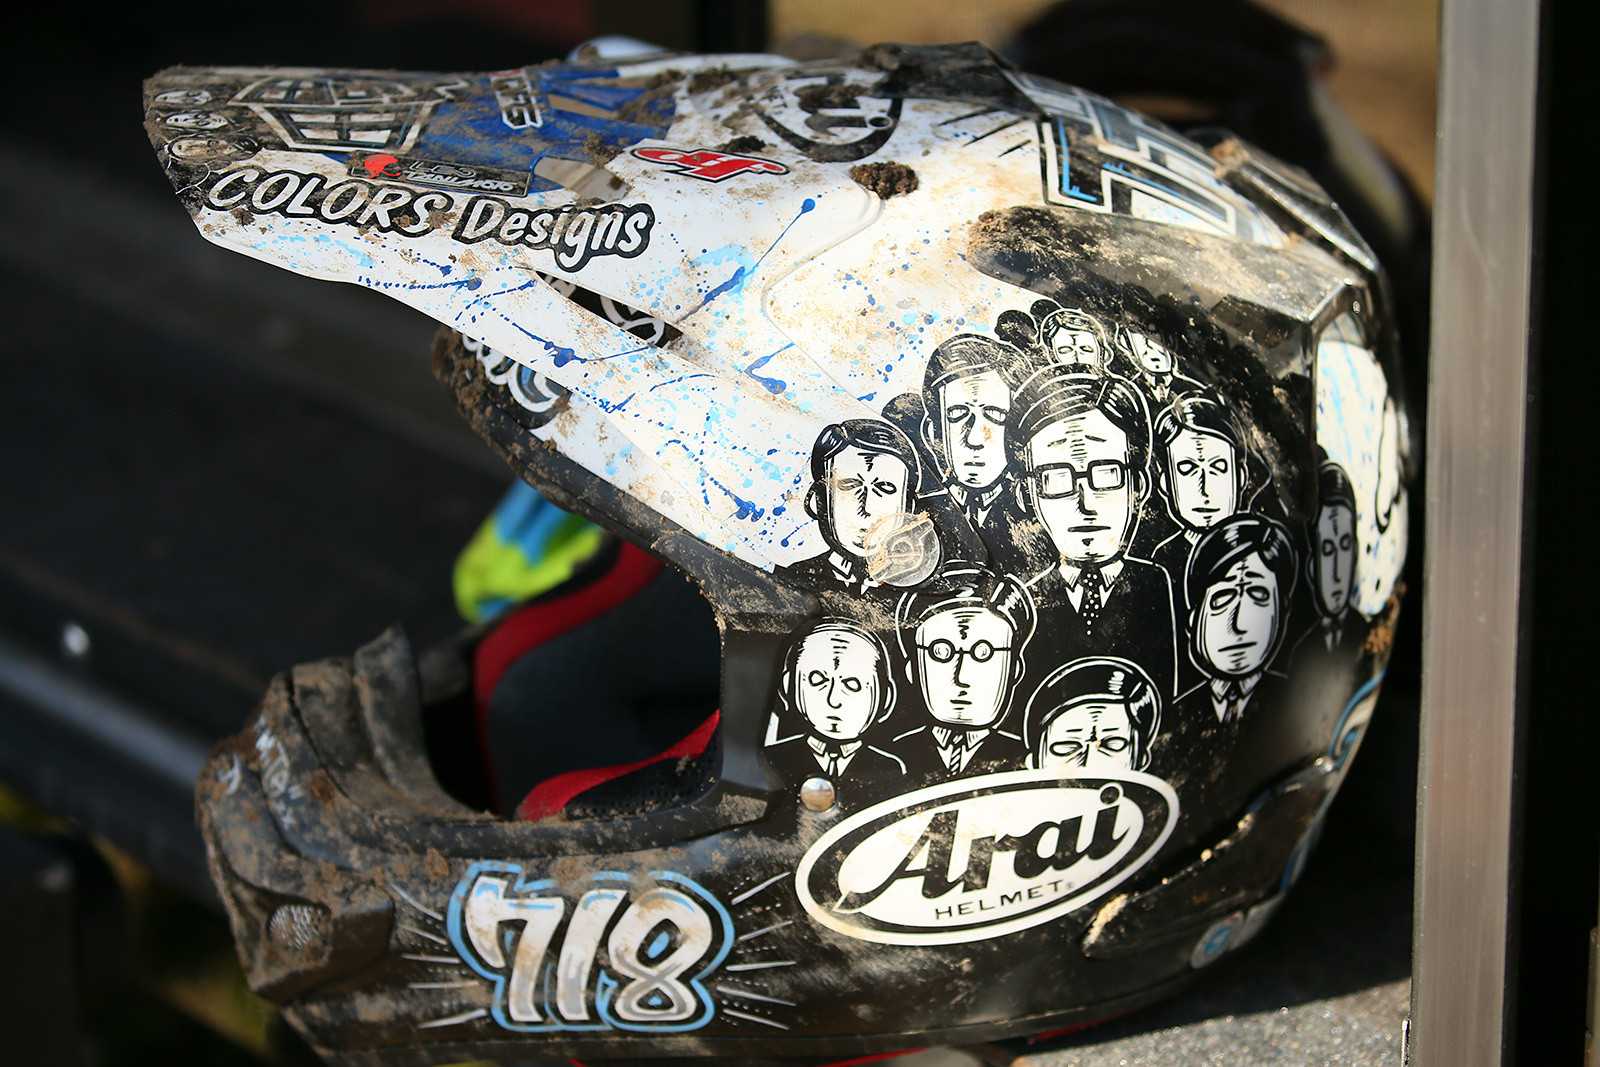 Toshiki Tomita always has some really awesome custom helmet graphics from Colors Designs.